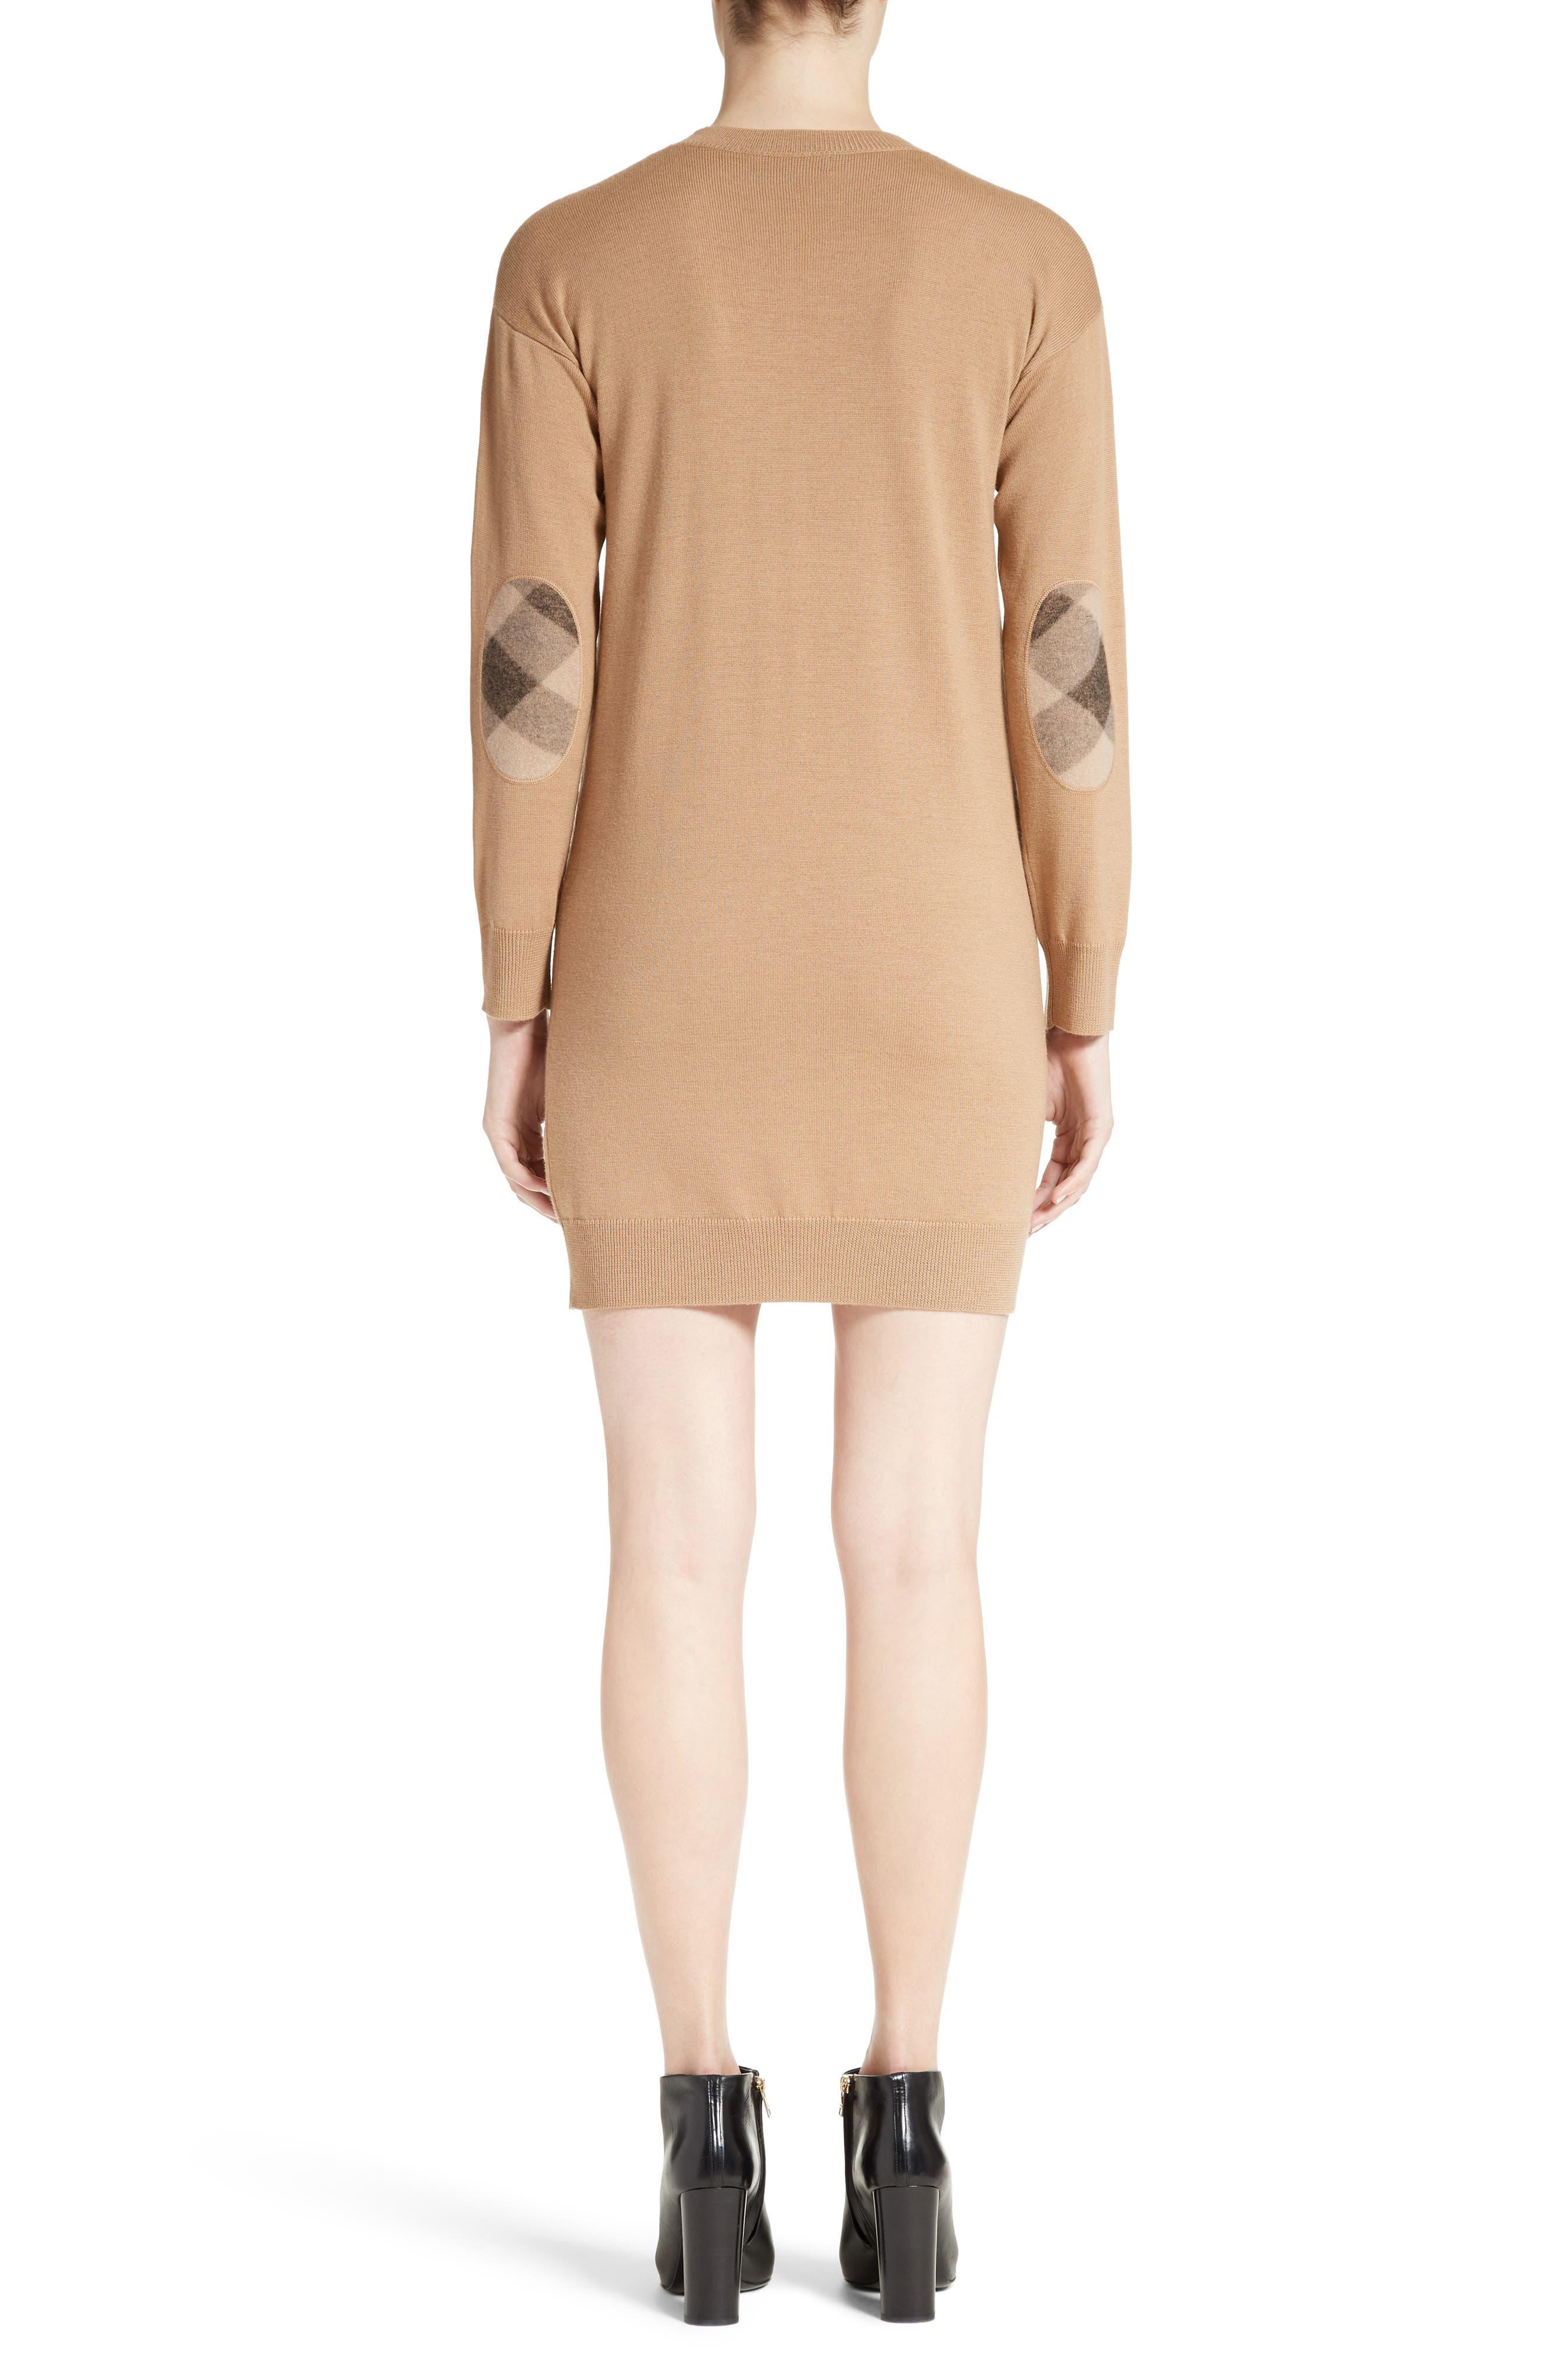 BURBERRY, Alewater Elbow Patch Merino Wool Dress, Alternate thumbnail 2, color, CAMEL